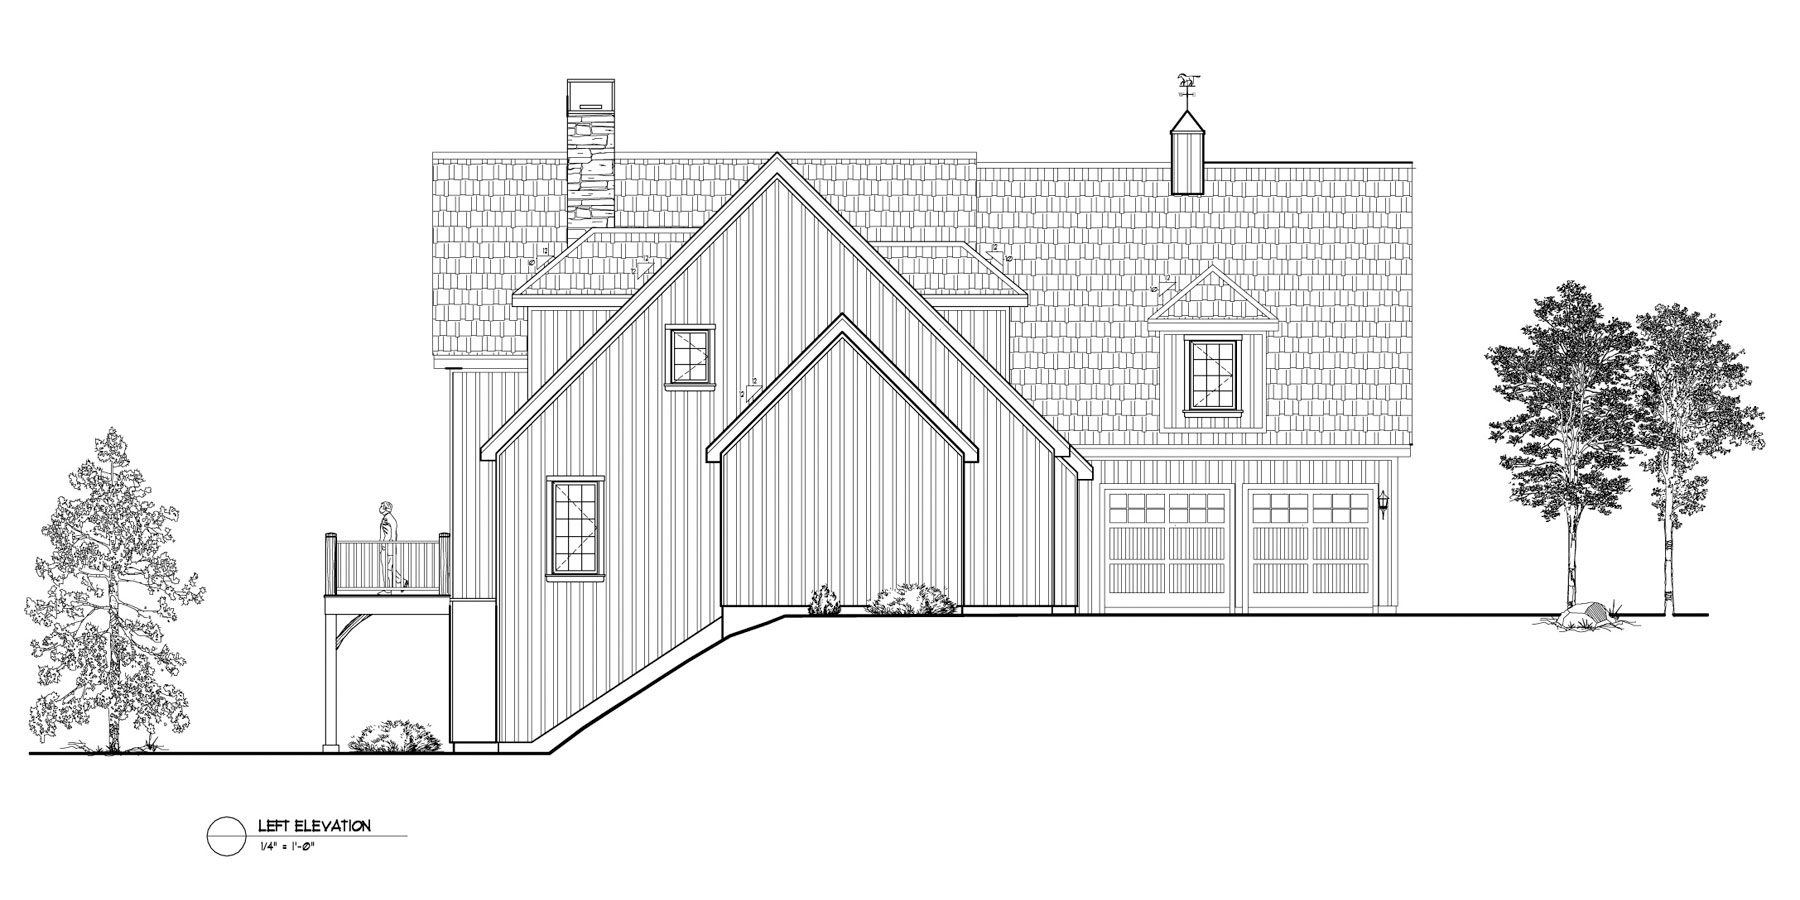 Normerica Timber Frames, House Plan, The Brennan 3576, Left Elevation